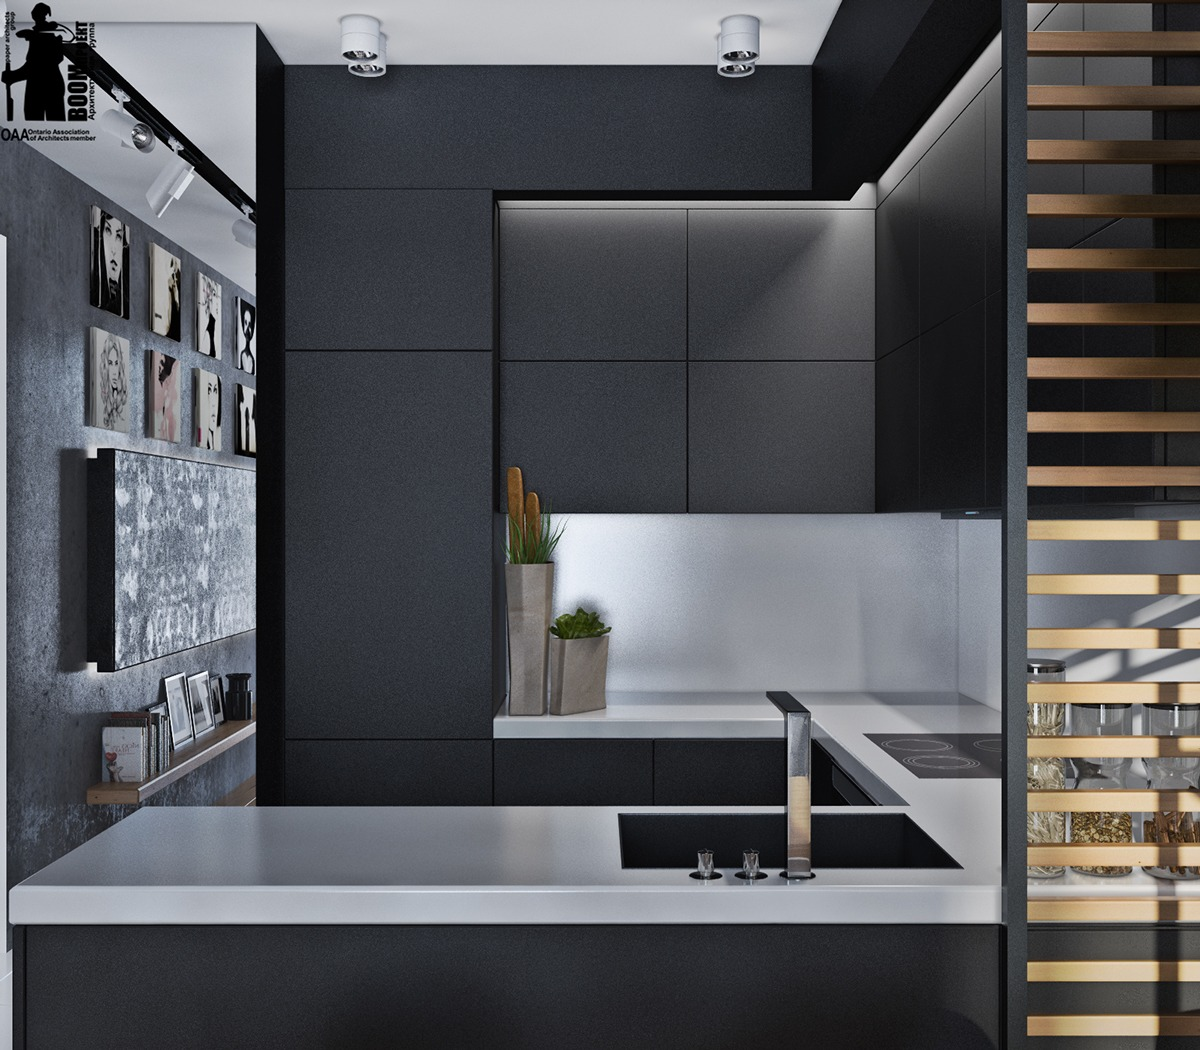 Matte Kitchen Cabinets Artistic Apartments With Monochromatic Color Schemes